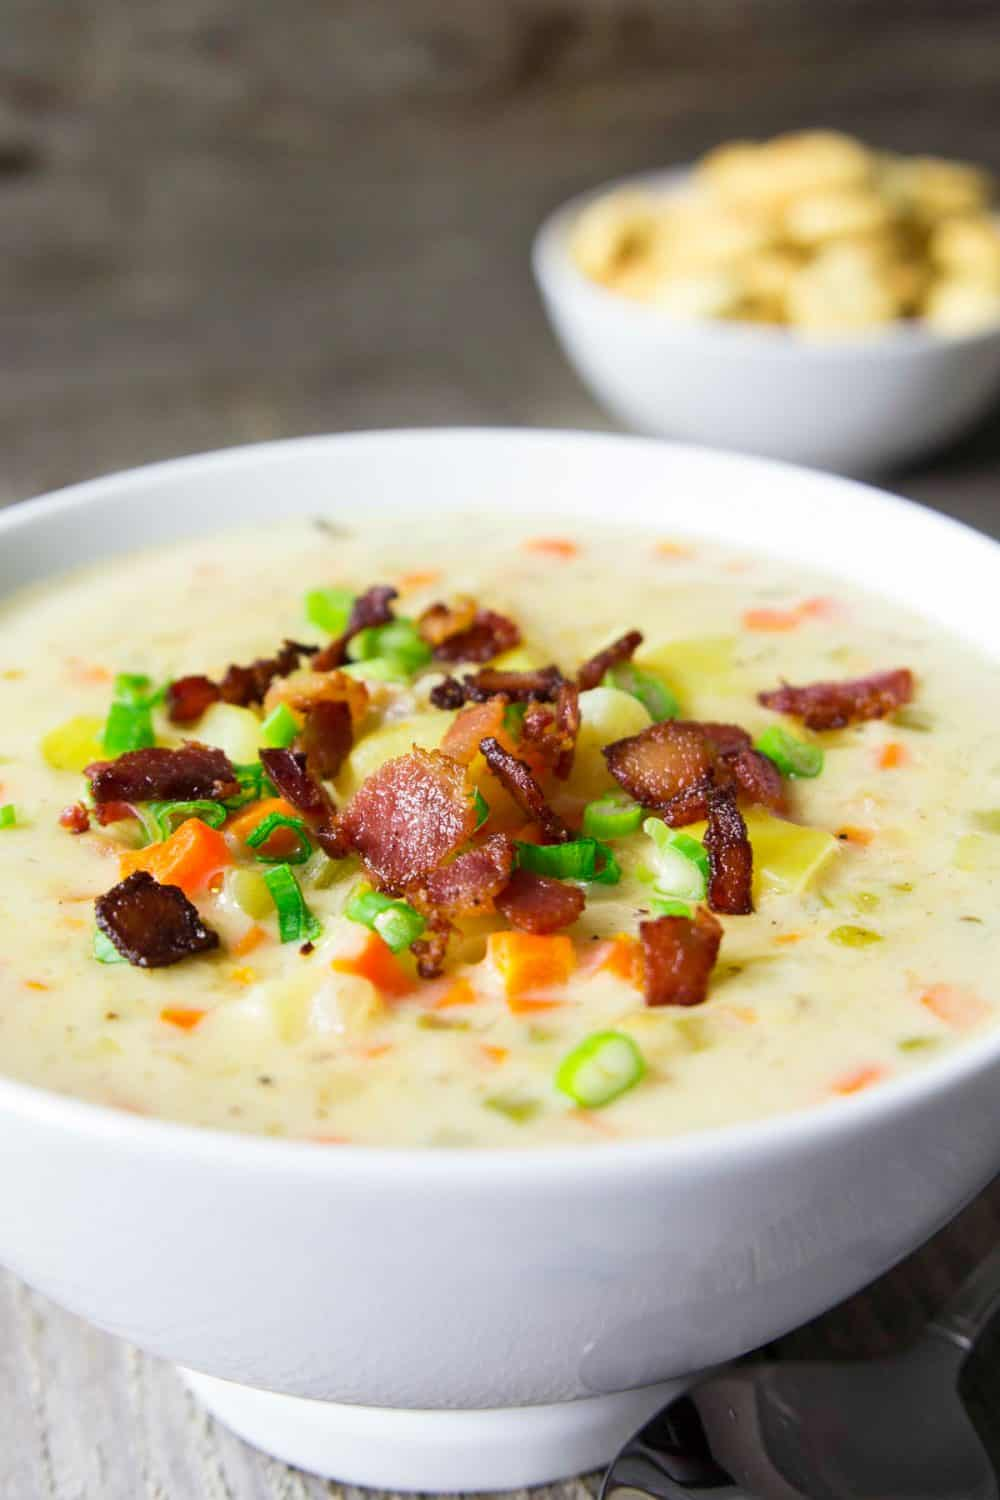 A large white bowl on a wooden table full of clam chowder soup that has been topped with bacon crumbles and diced green onions